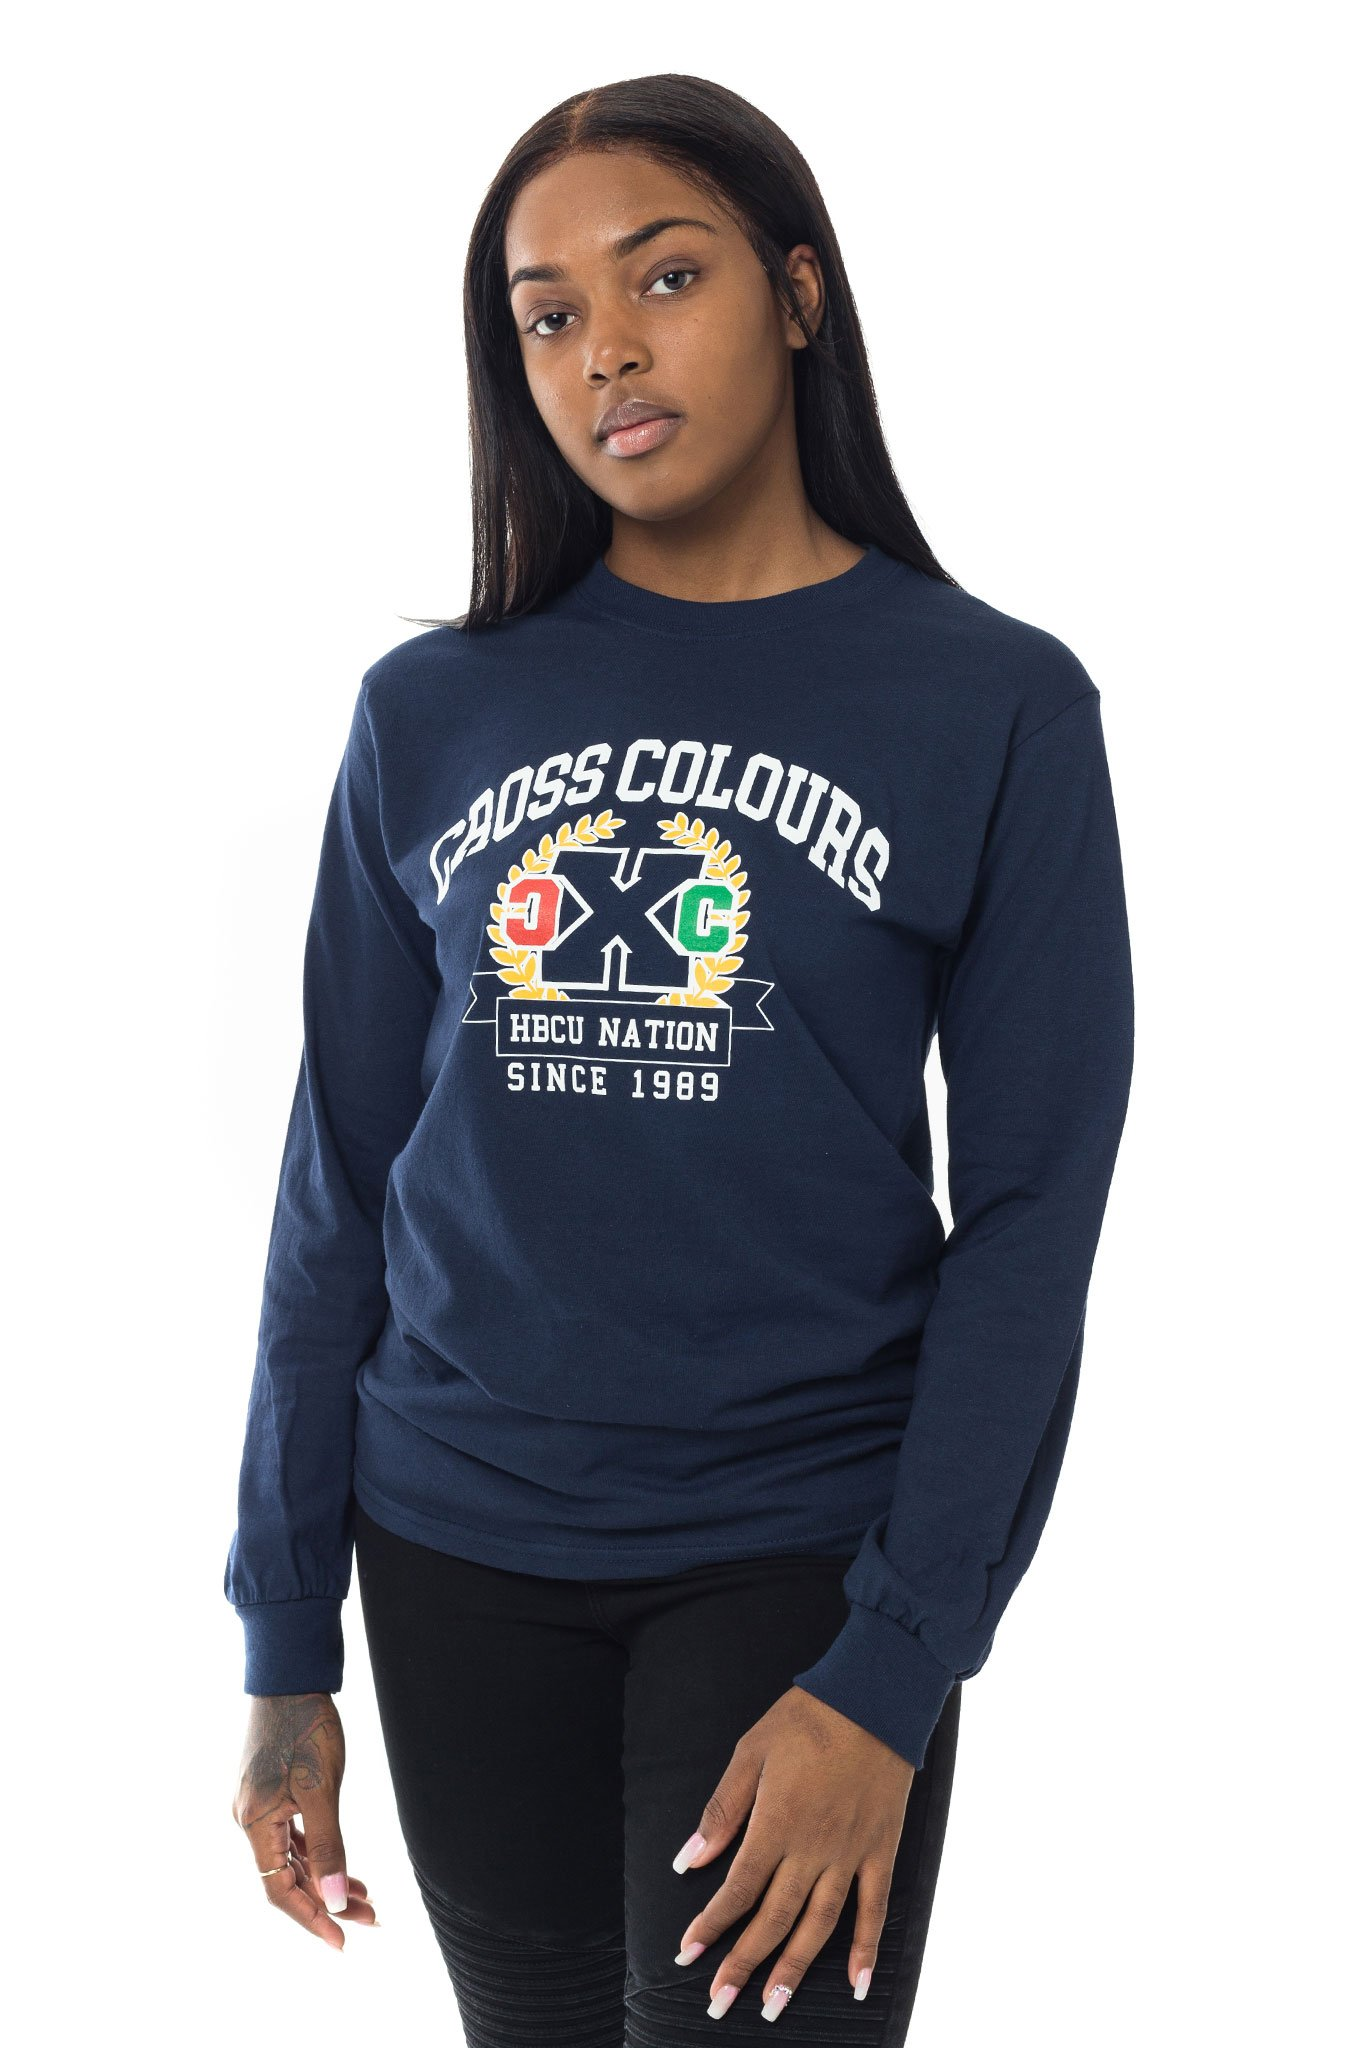 Cross_Colours_HBCU_Nation_Unisex_Long_Sleeve_TShirt__Navy